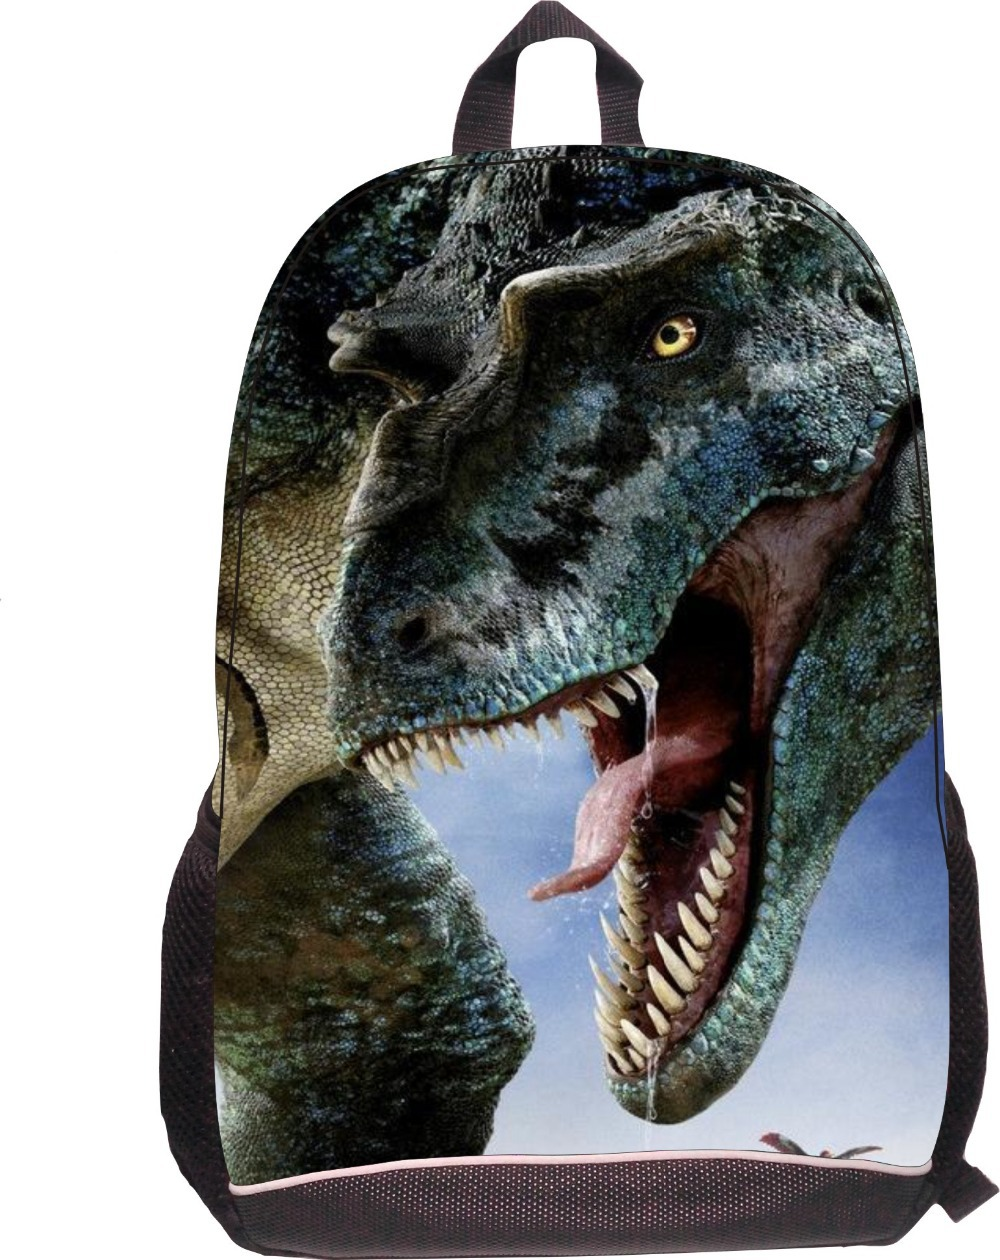 New! large zipper polyester dinosaur 16 inch school bags for kids child backpack bag wholesaler from xia men<br><br>Aliexpress